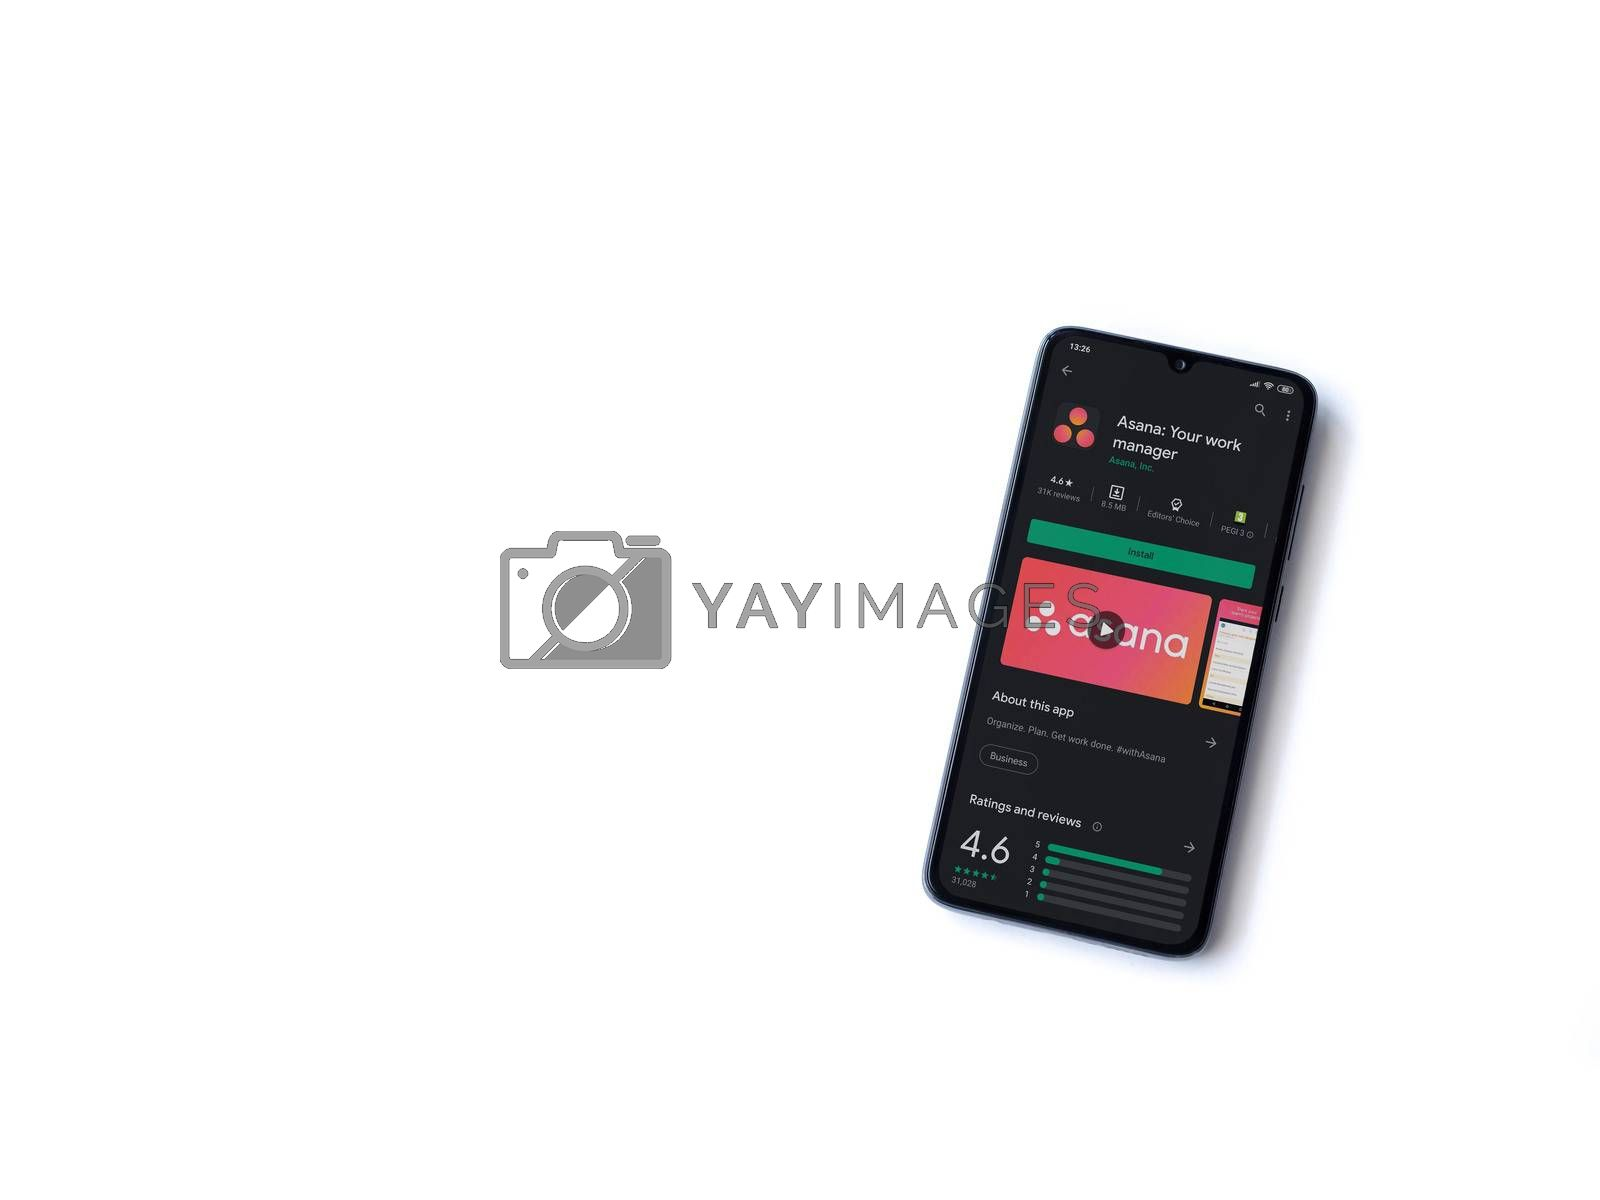 Lod, Israel - July 8, 2020: Asana app play store page on the display of a black mobile smartphone isolated on white background. Top view flat lay with copy space.